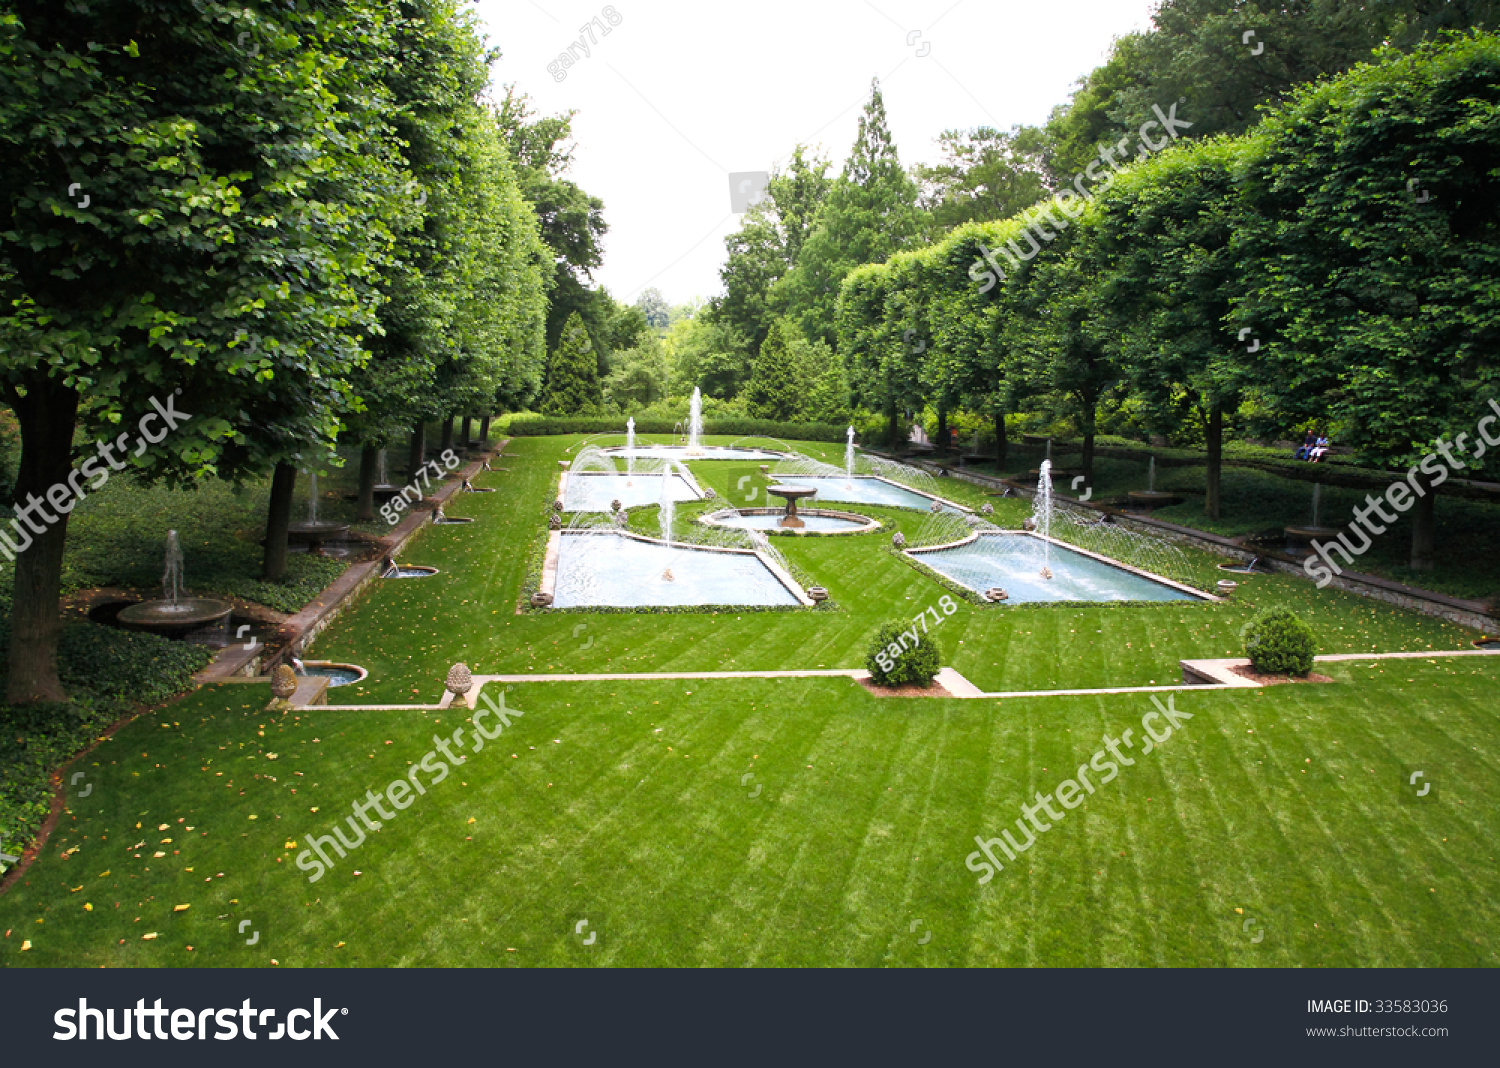 A italian garden design in a botanical garden usa stock for Botanical garden design